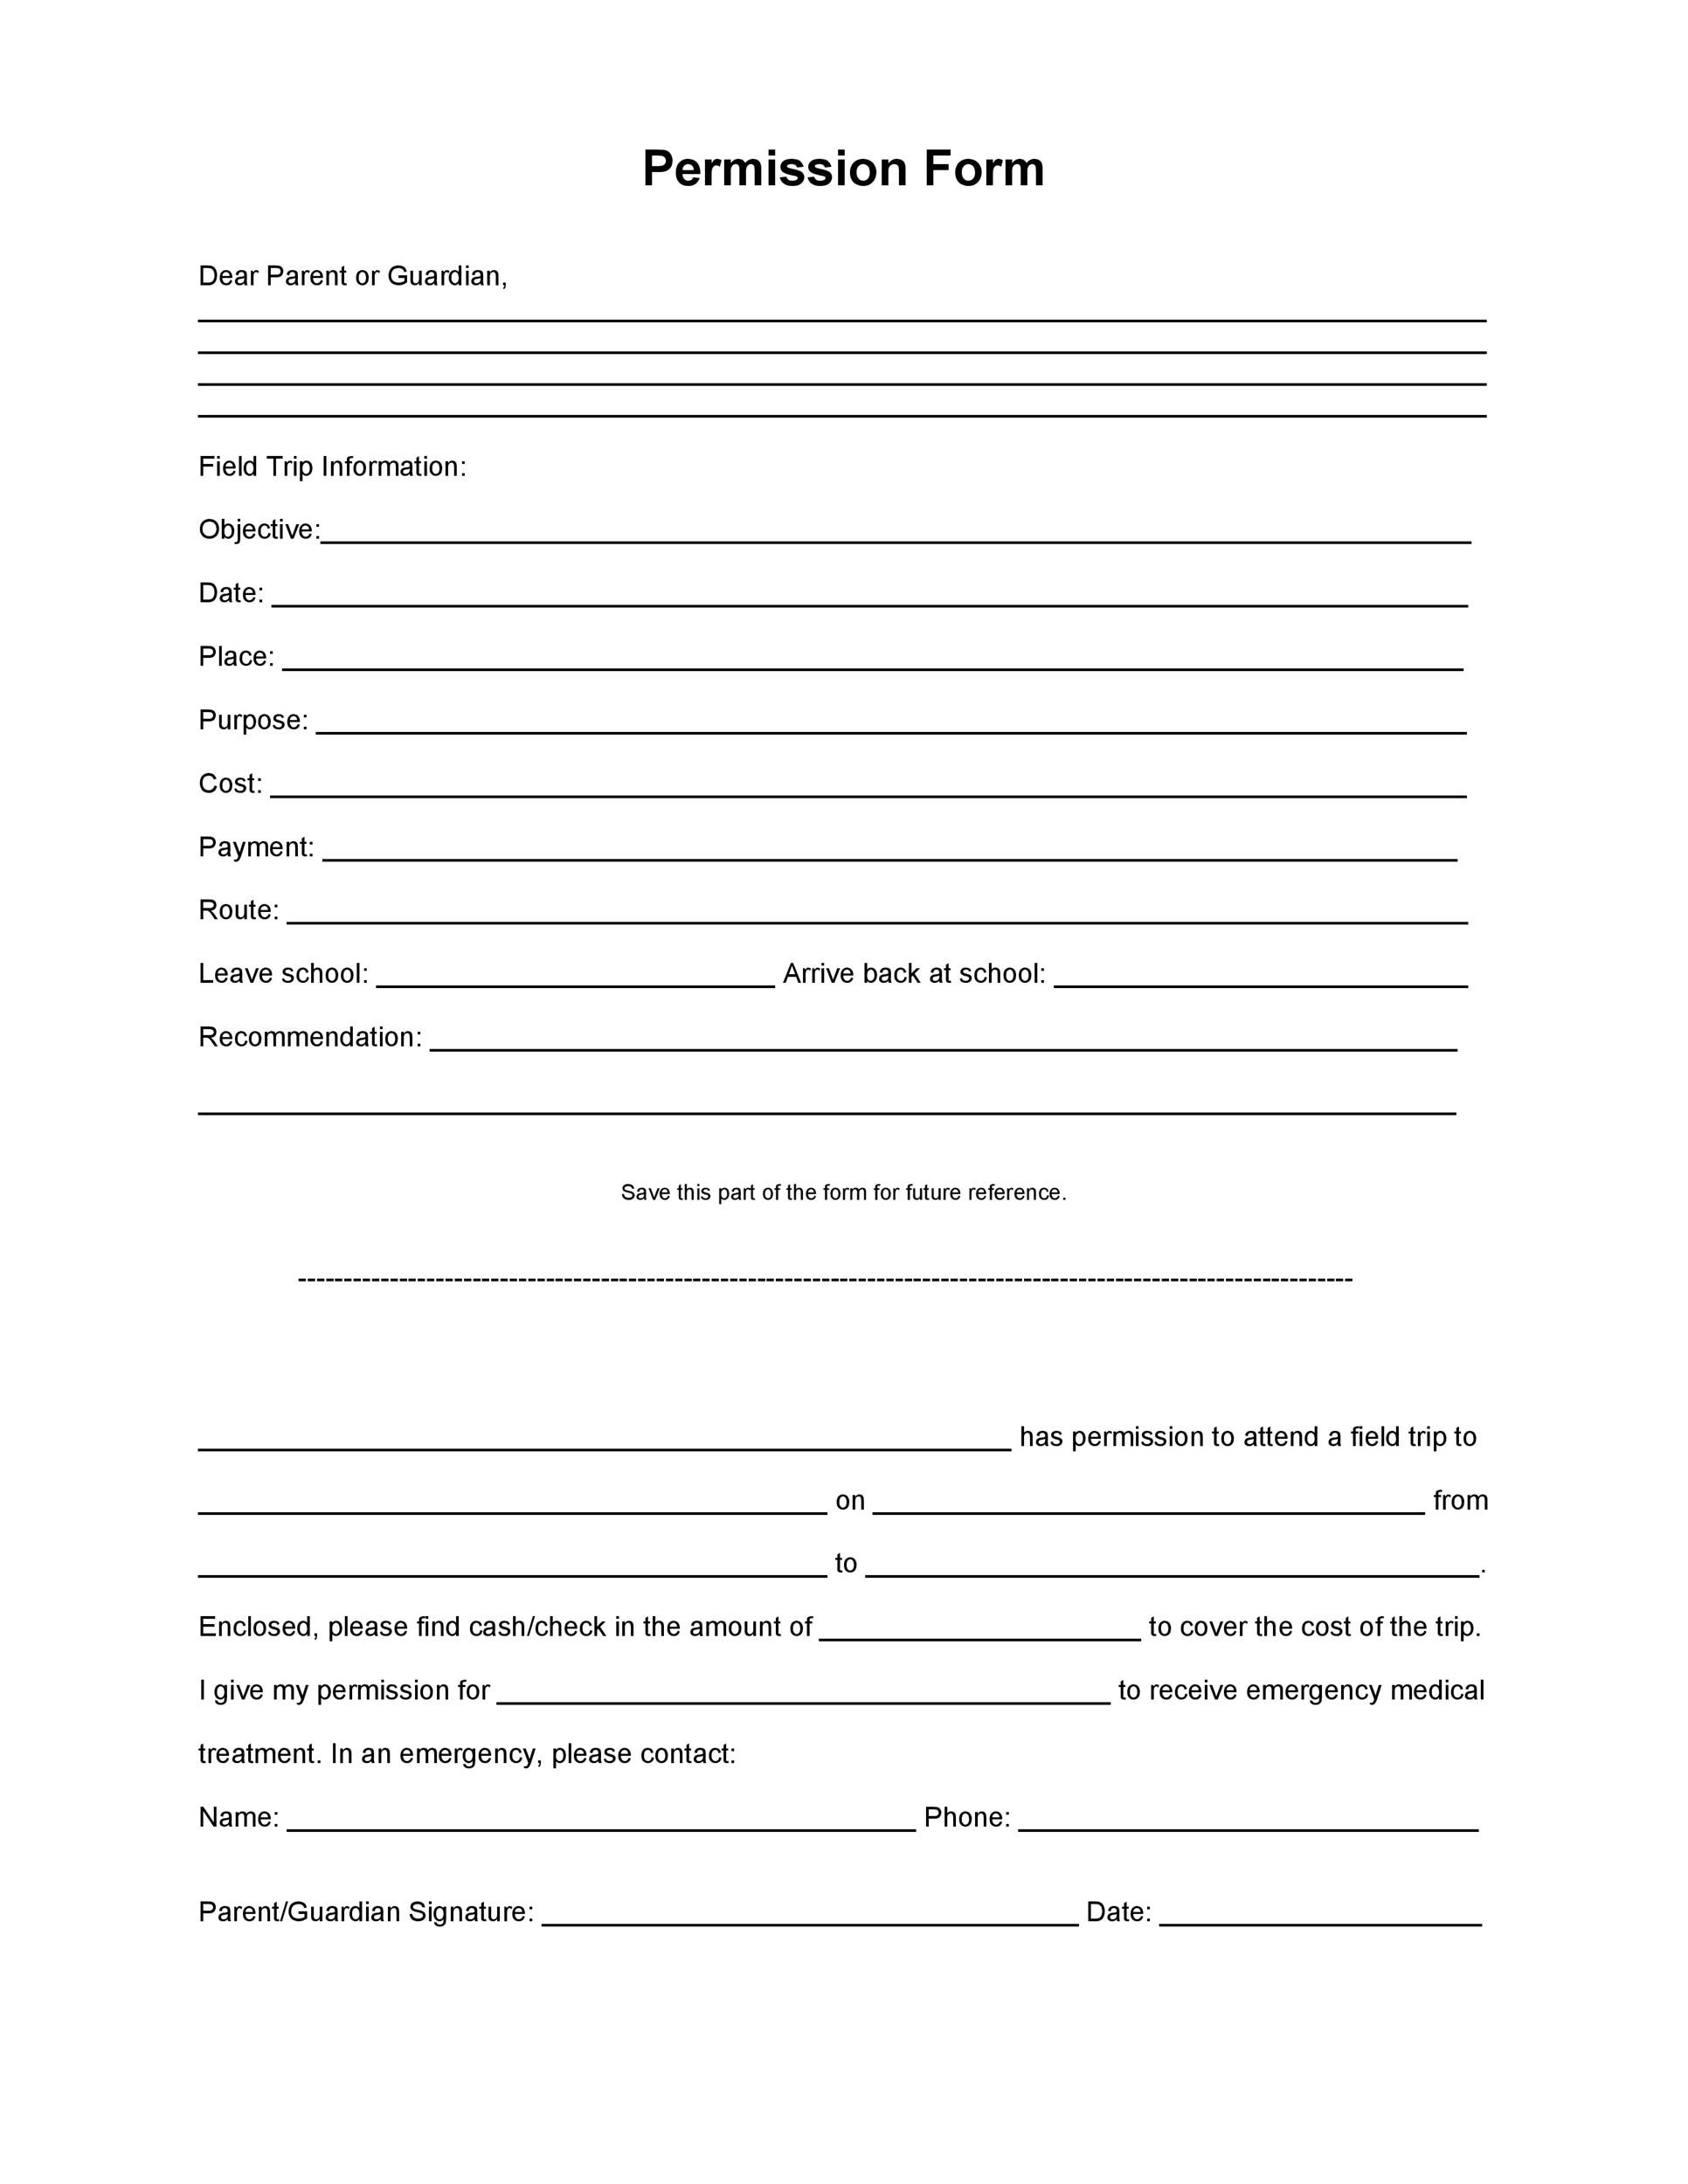 35 permission slip templates field trip forms for Photography permission form template